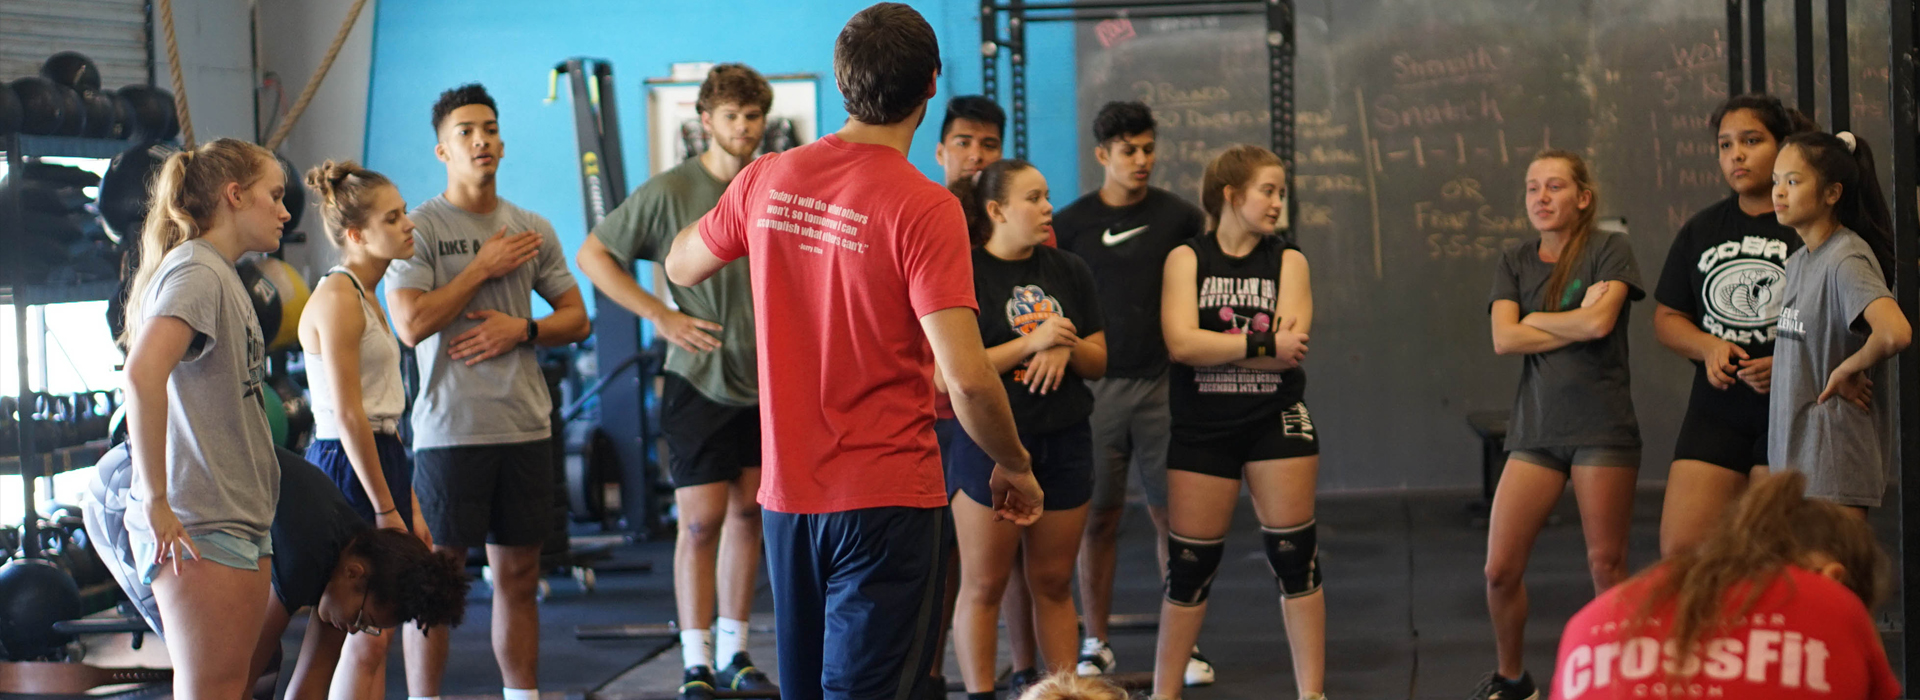 Youth Strength and Conditioning Training in Odessa FL, Youth Strength and Conditioning Training near Odessa FL, Youth Strength and Conditioning Training near Tampa FL